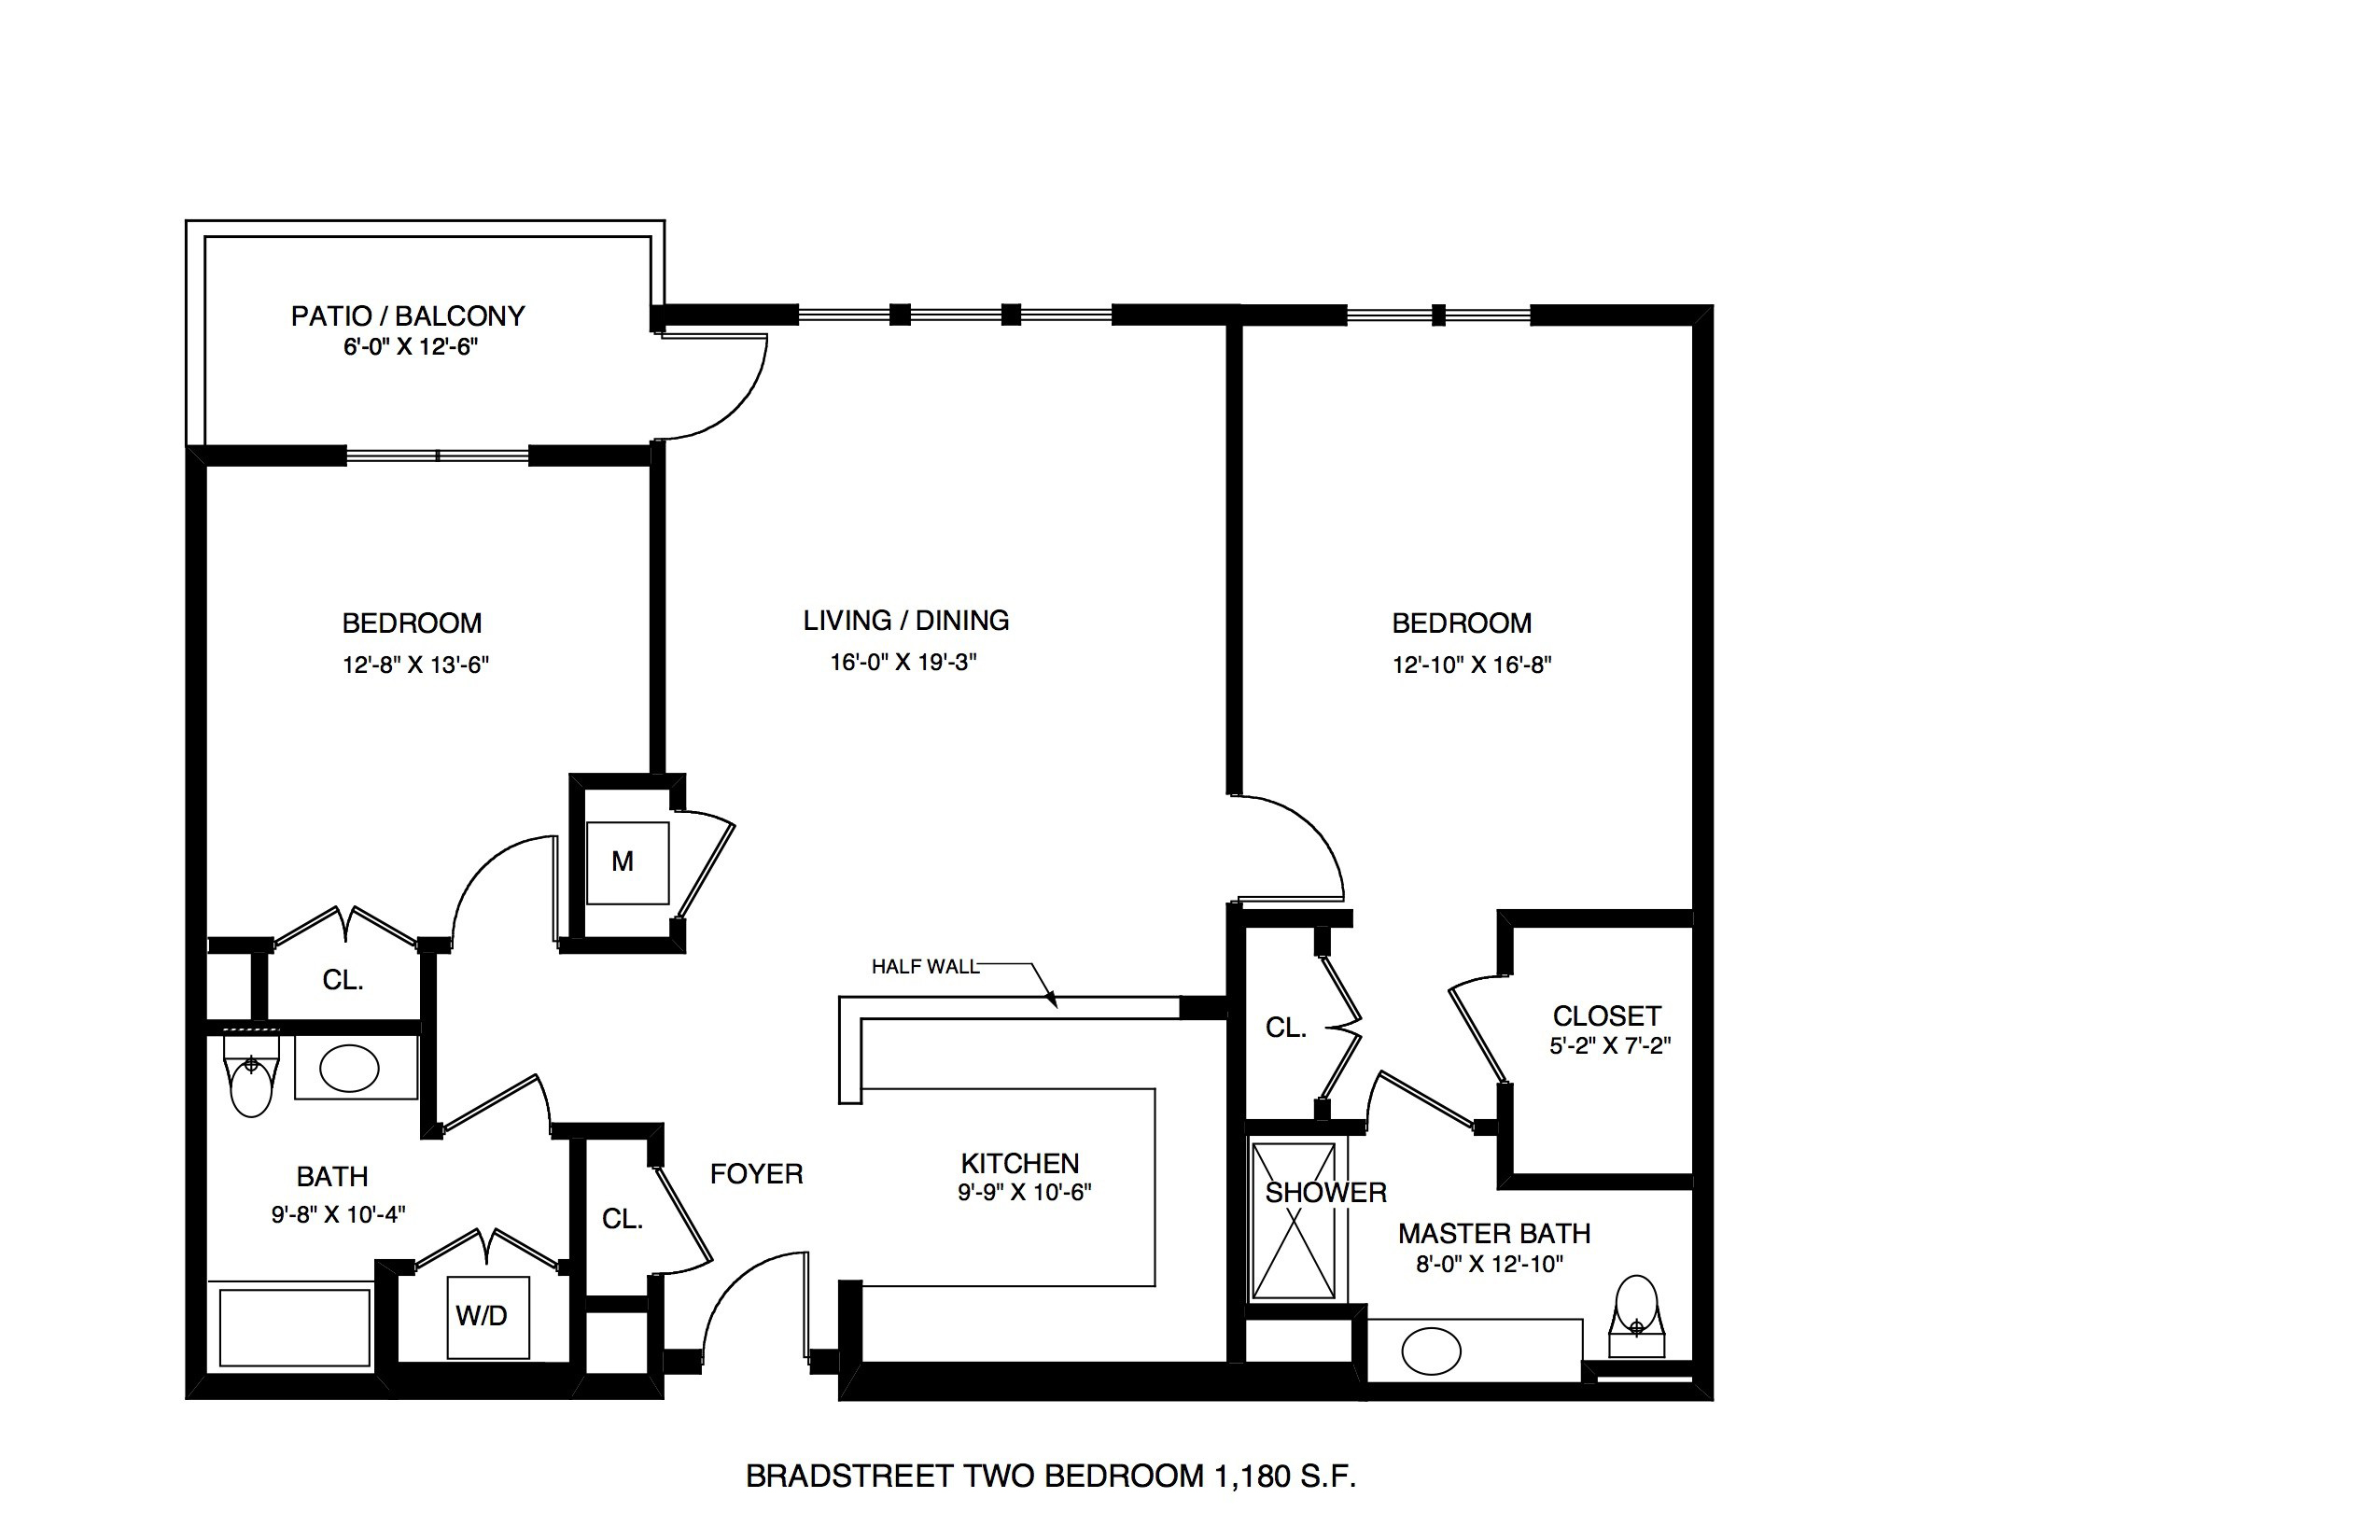 Floor Plans Designing Sketching Services